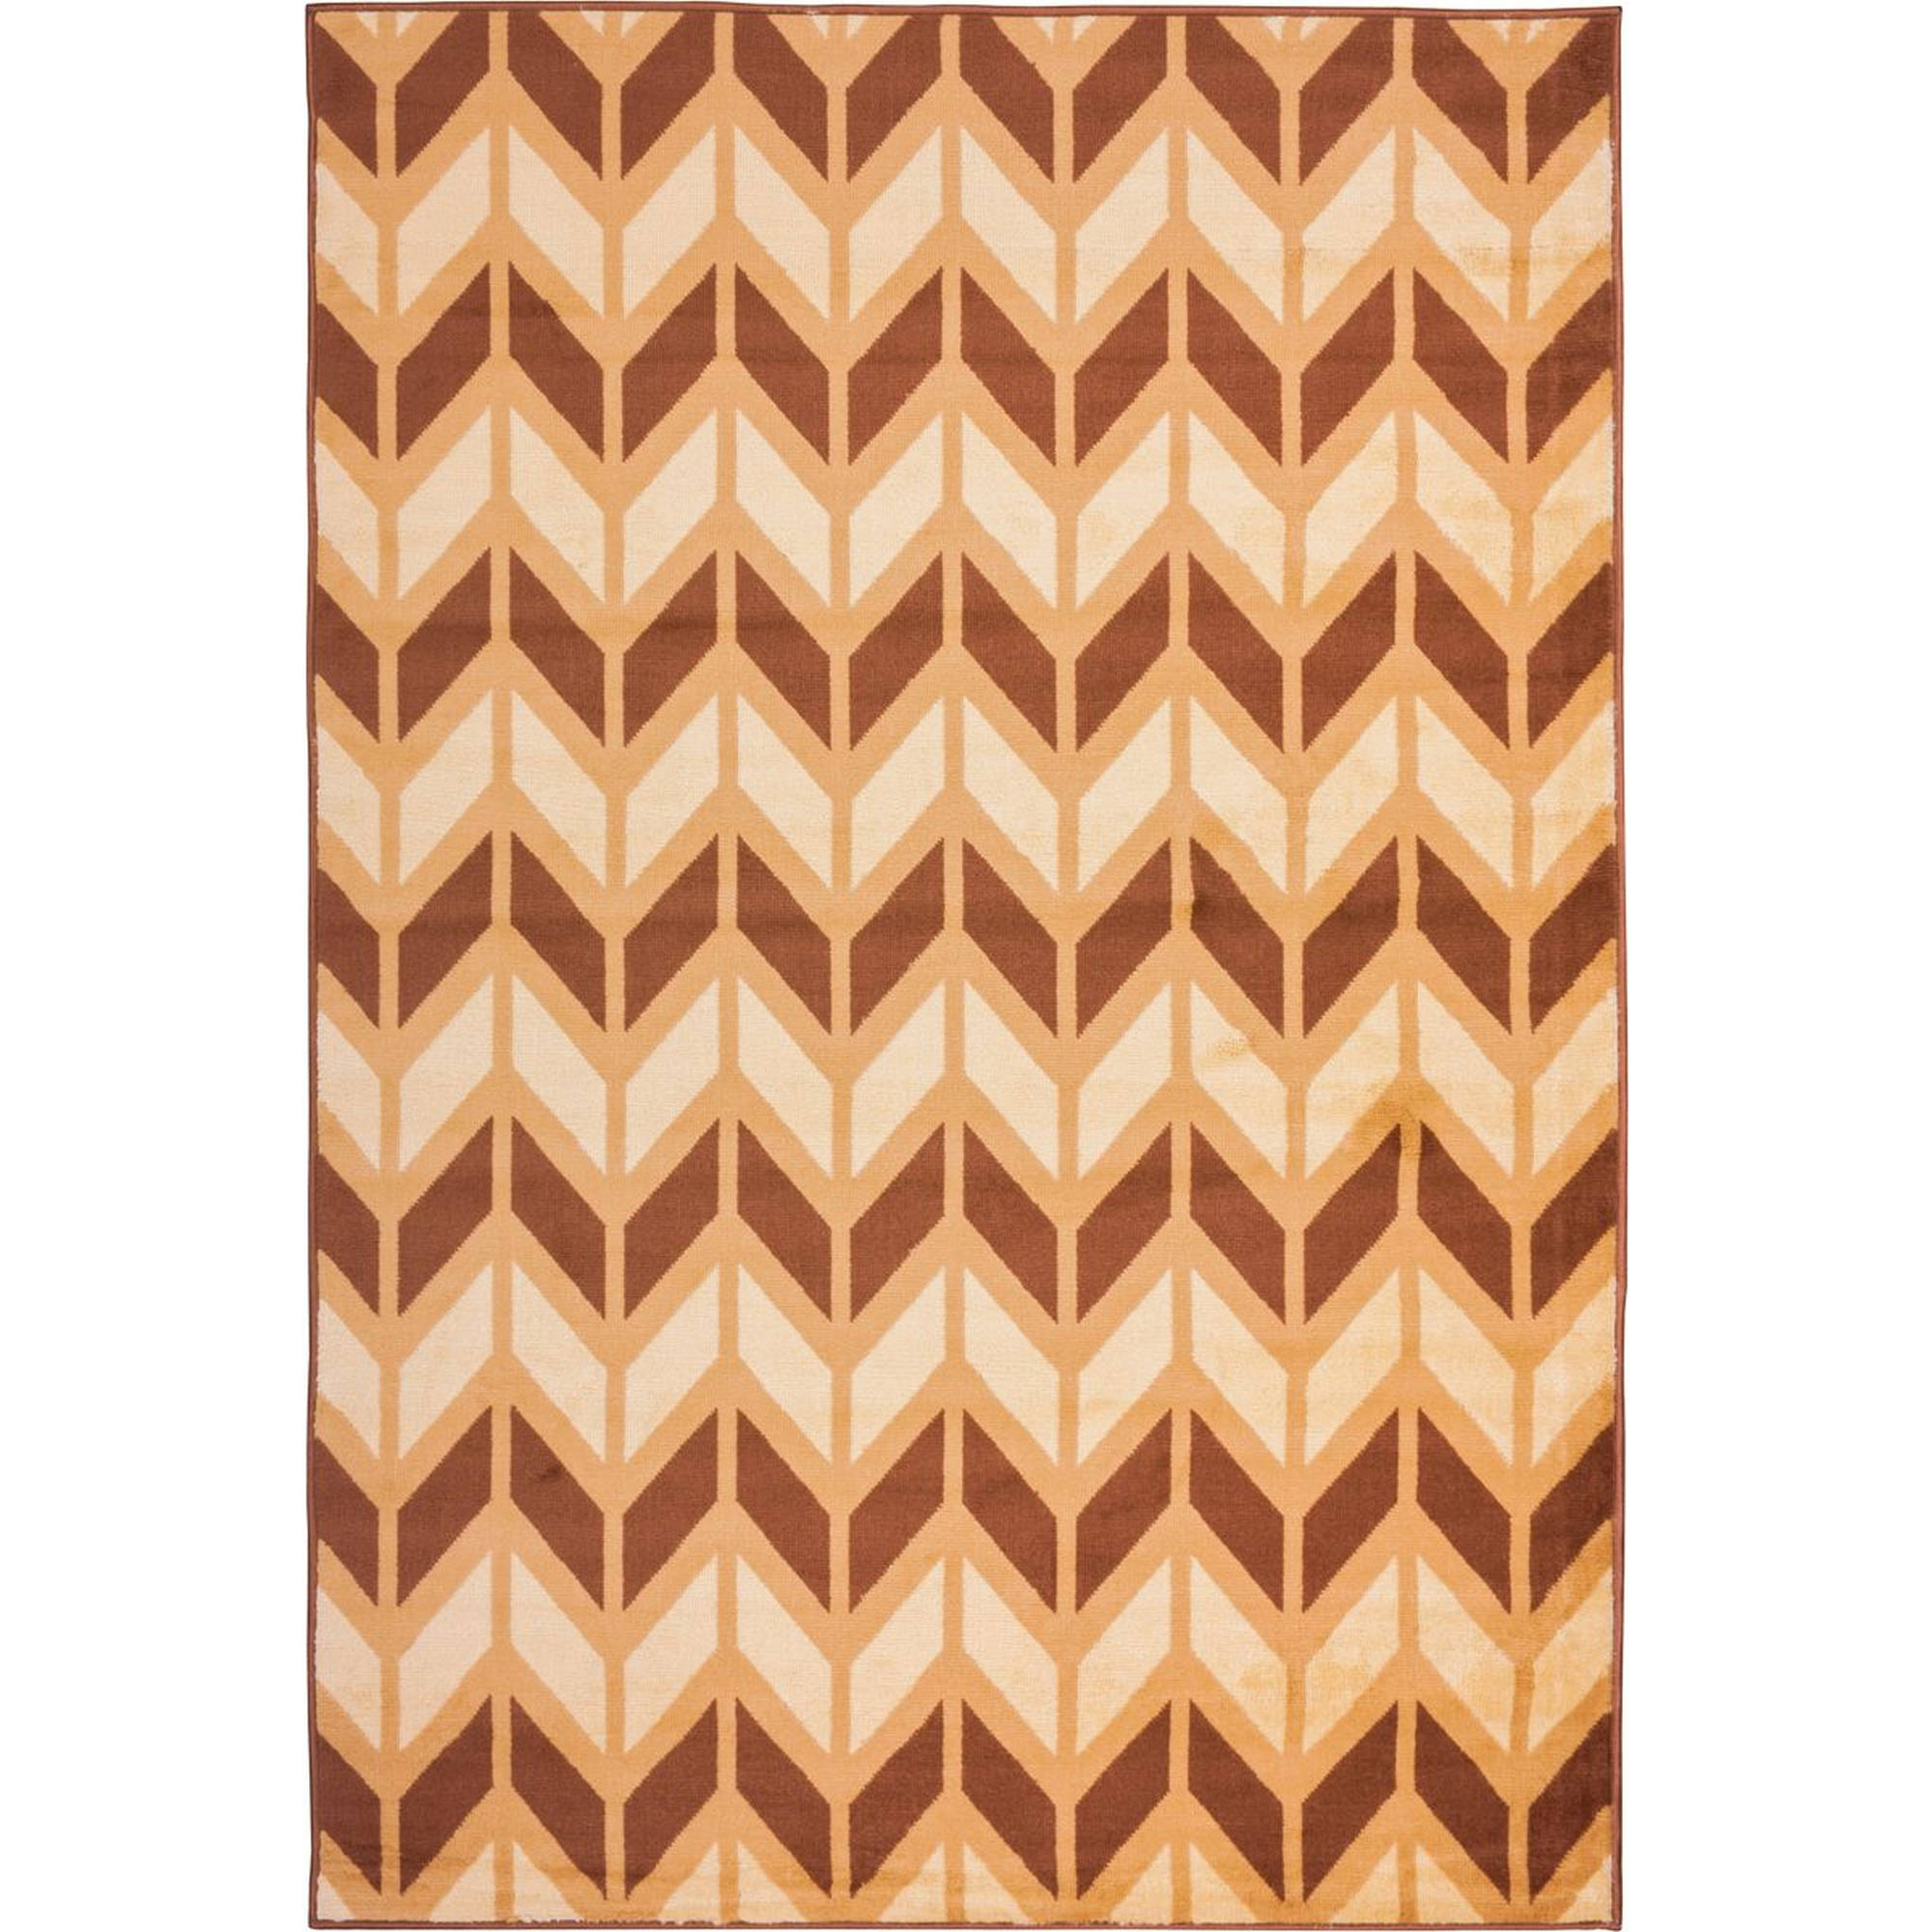 Spirit Chevron Gold 5x7 ( 5' x 7' ) Modern Geometric Zigzag Stripe Thin Value Area Rug Perfect for Living Room Dining Room Family Room